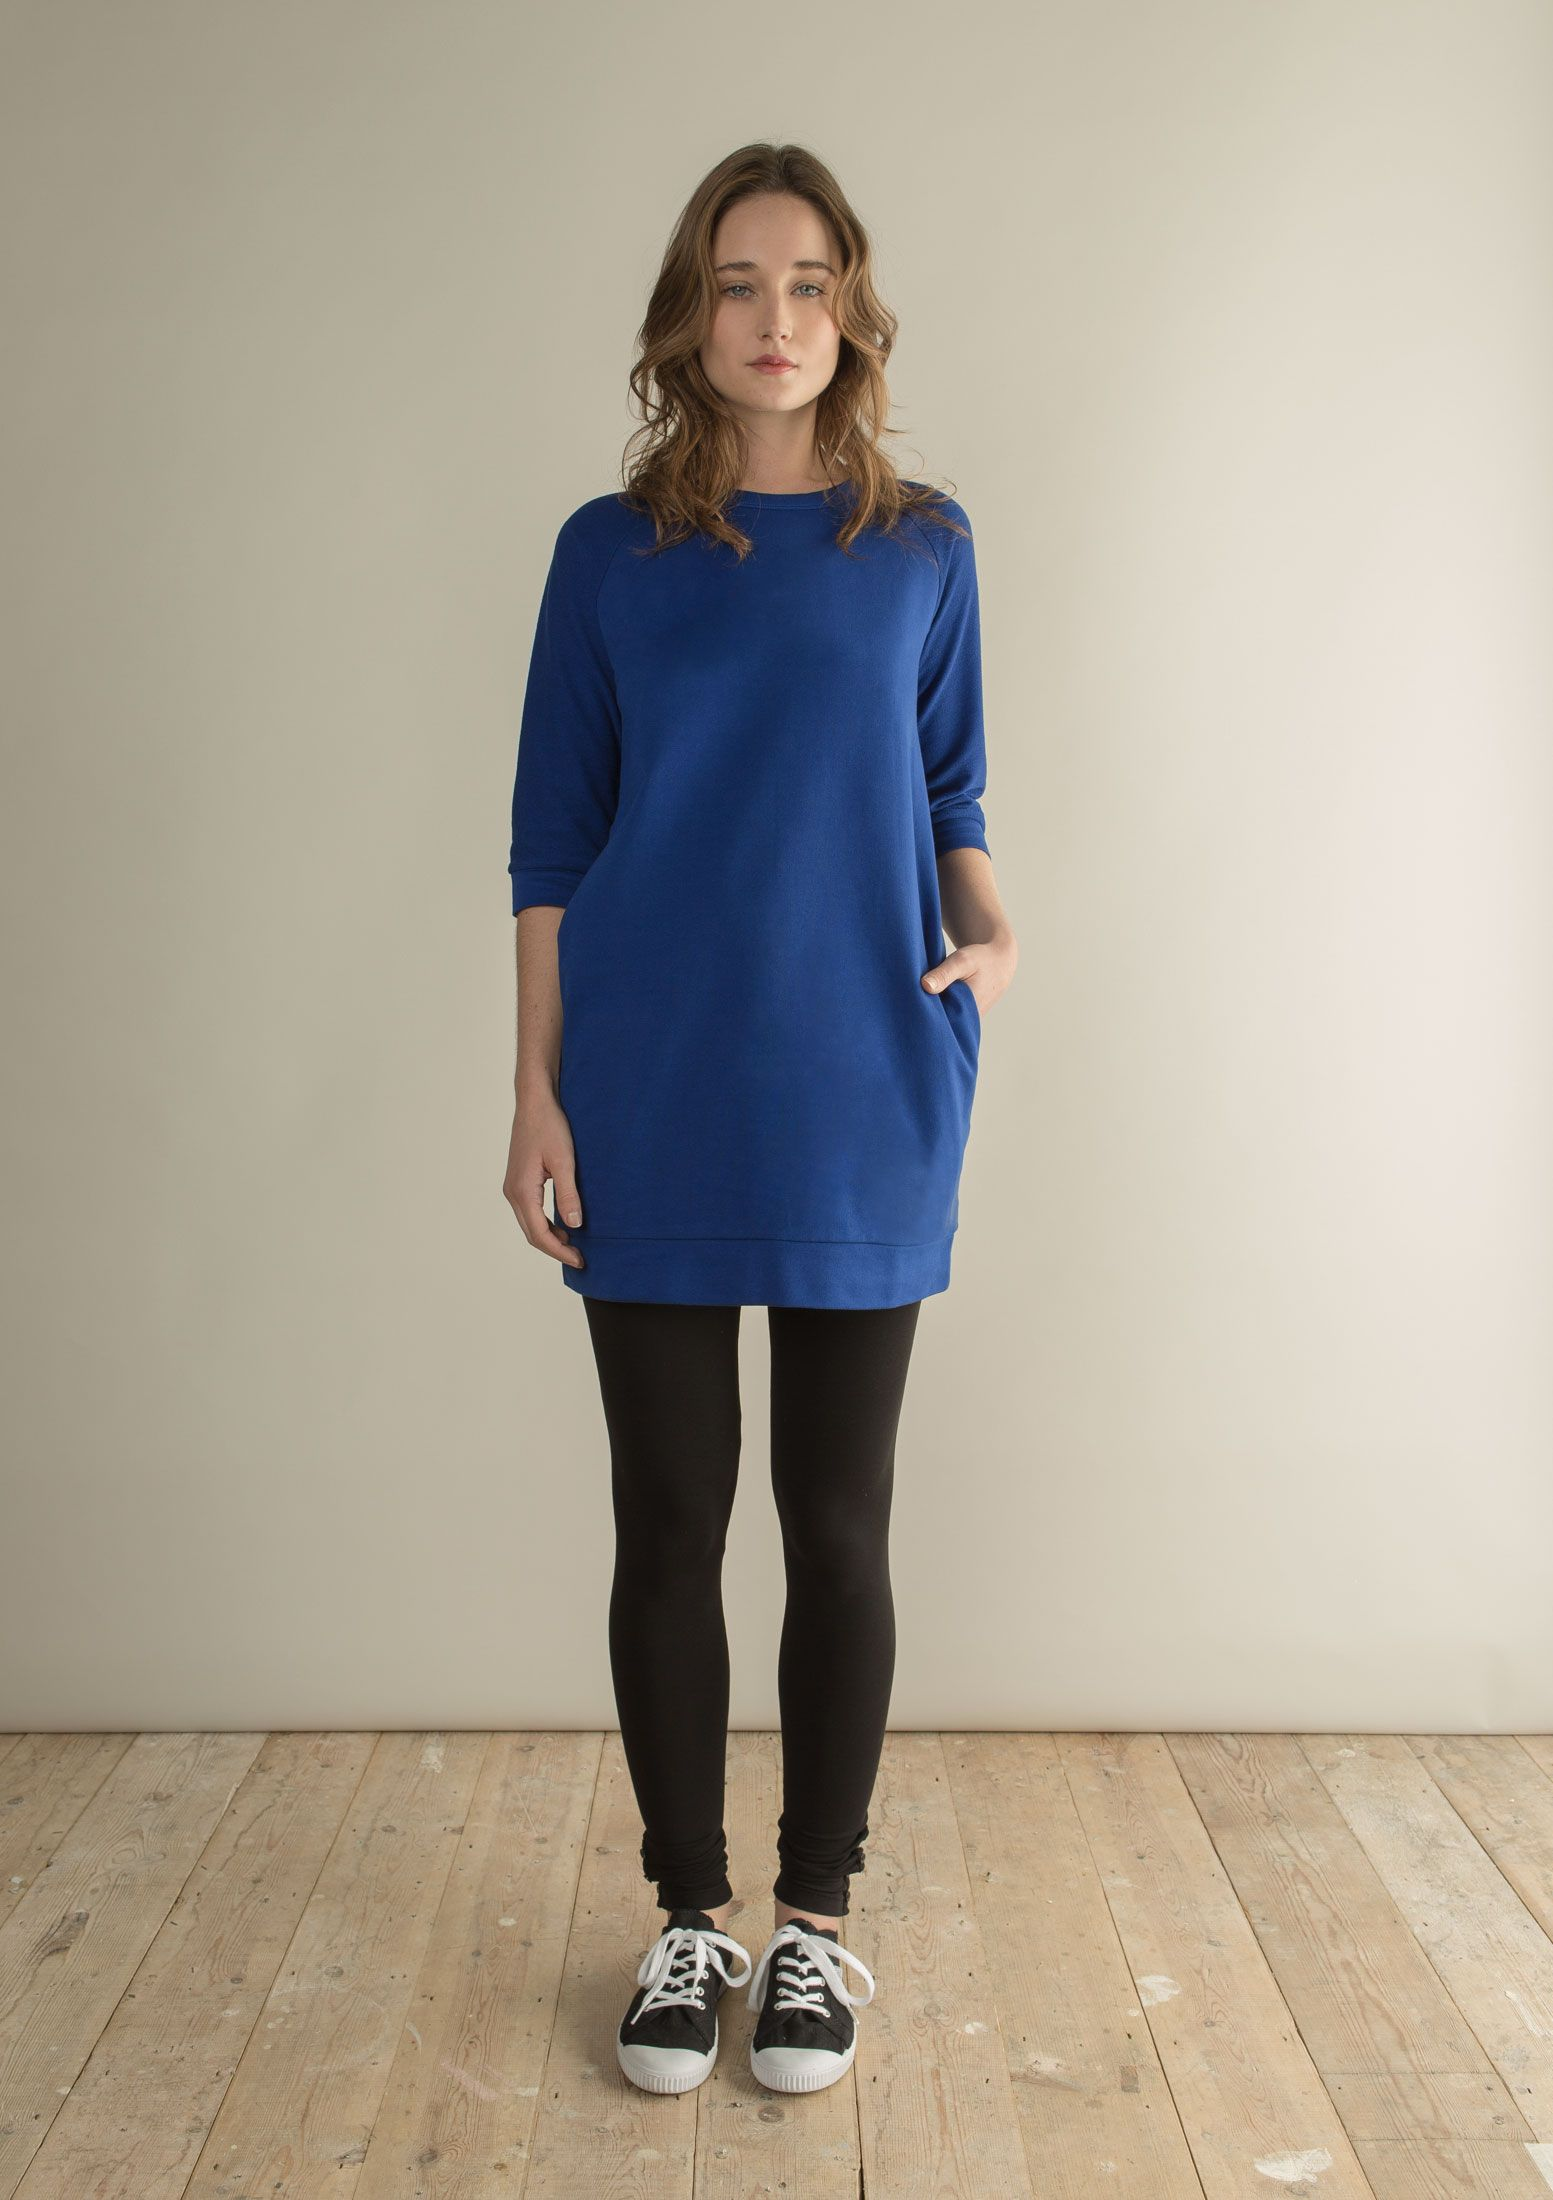 LOOPBACK SWEATER TUNIC by Home @Luvocracy |